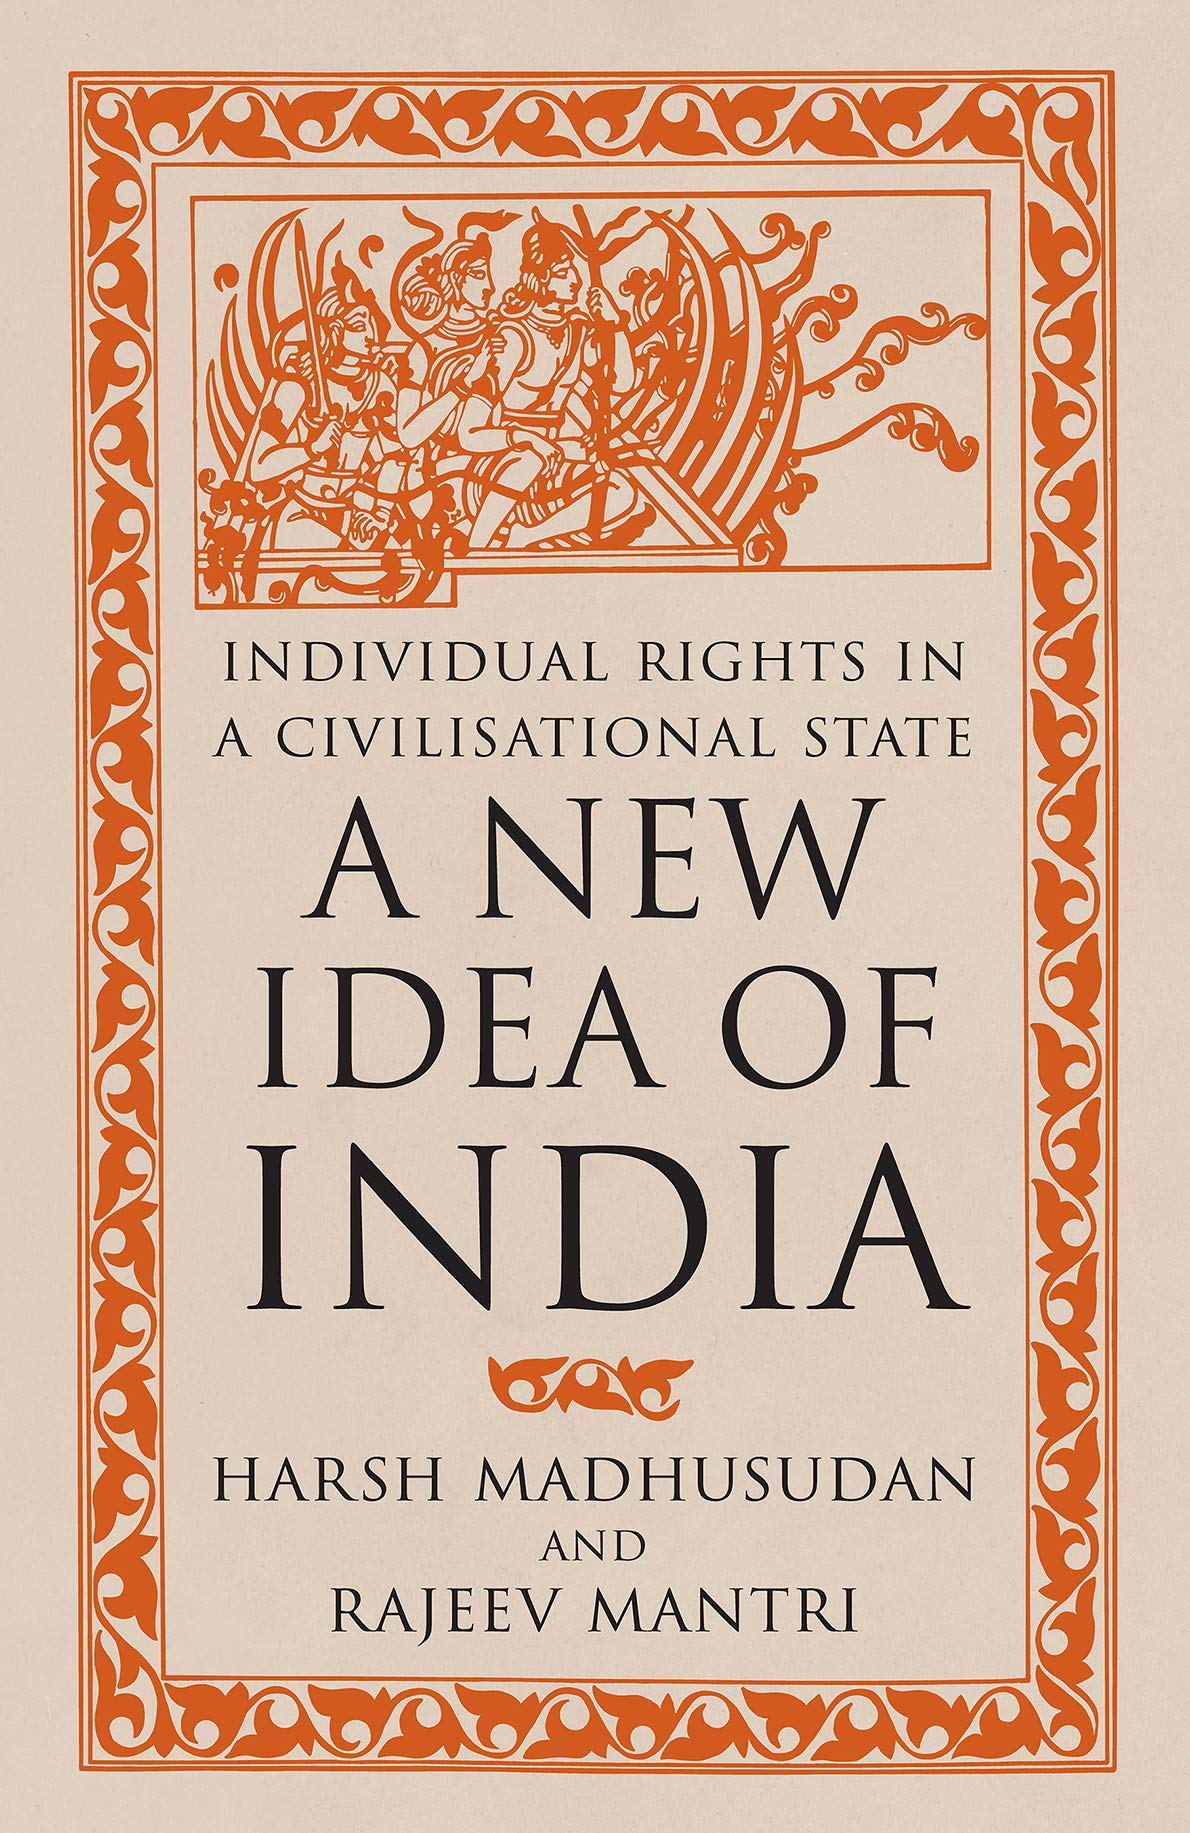 A New Idea of India: Individual Rights in a Civilisational State by Harsh Madhusudan and Rajeev Mantri,Westland, Rs 799